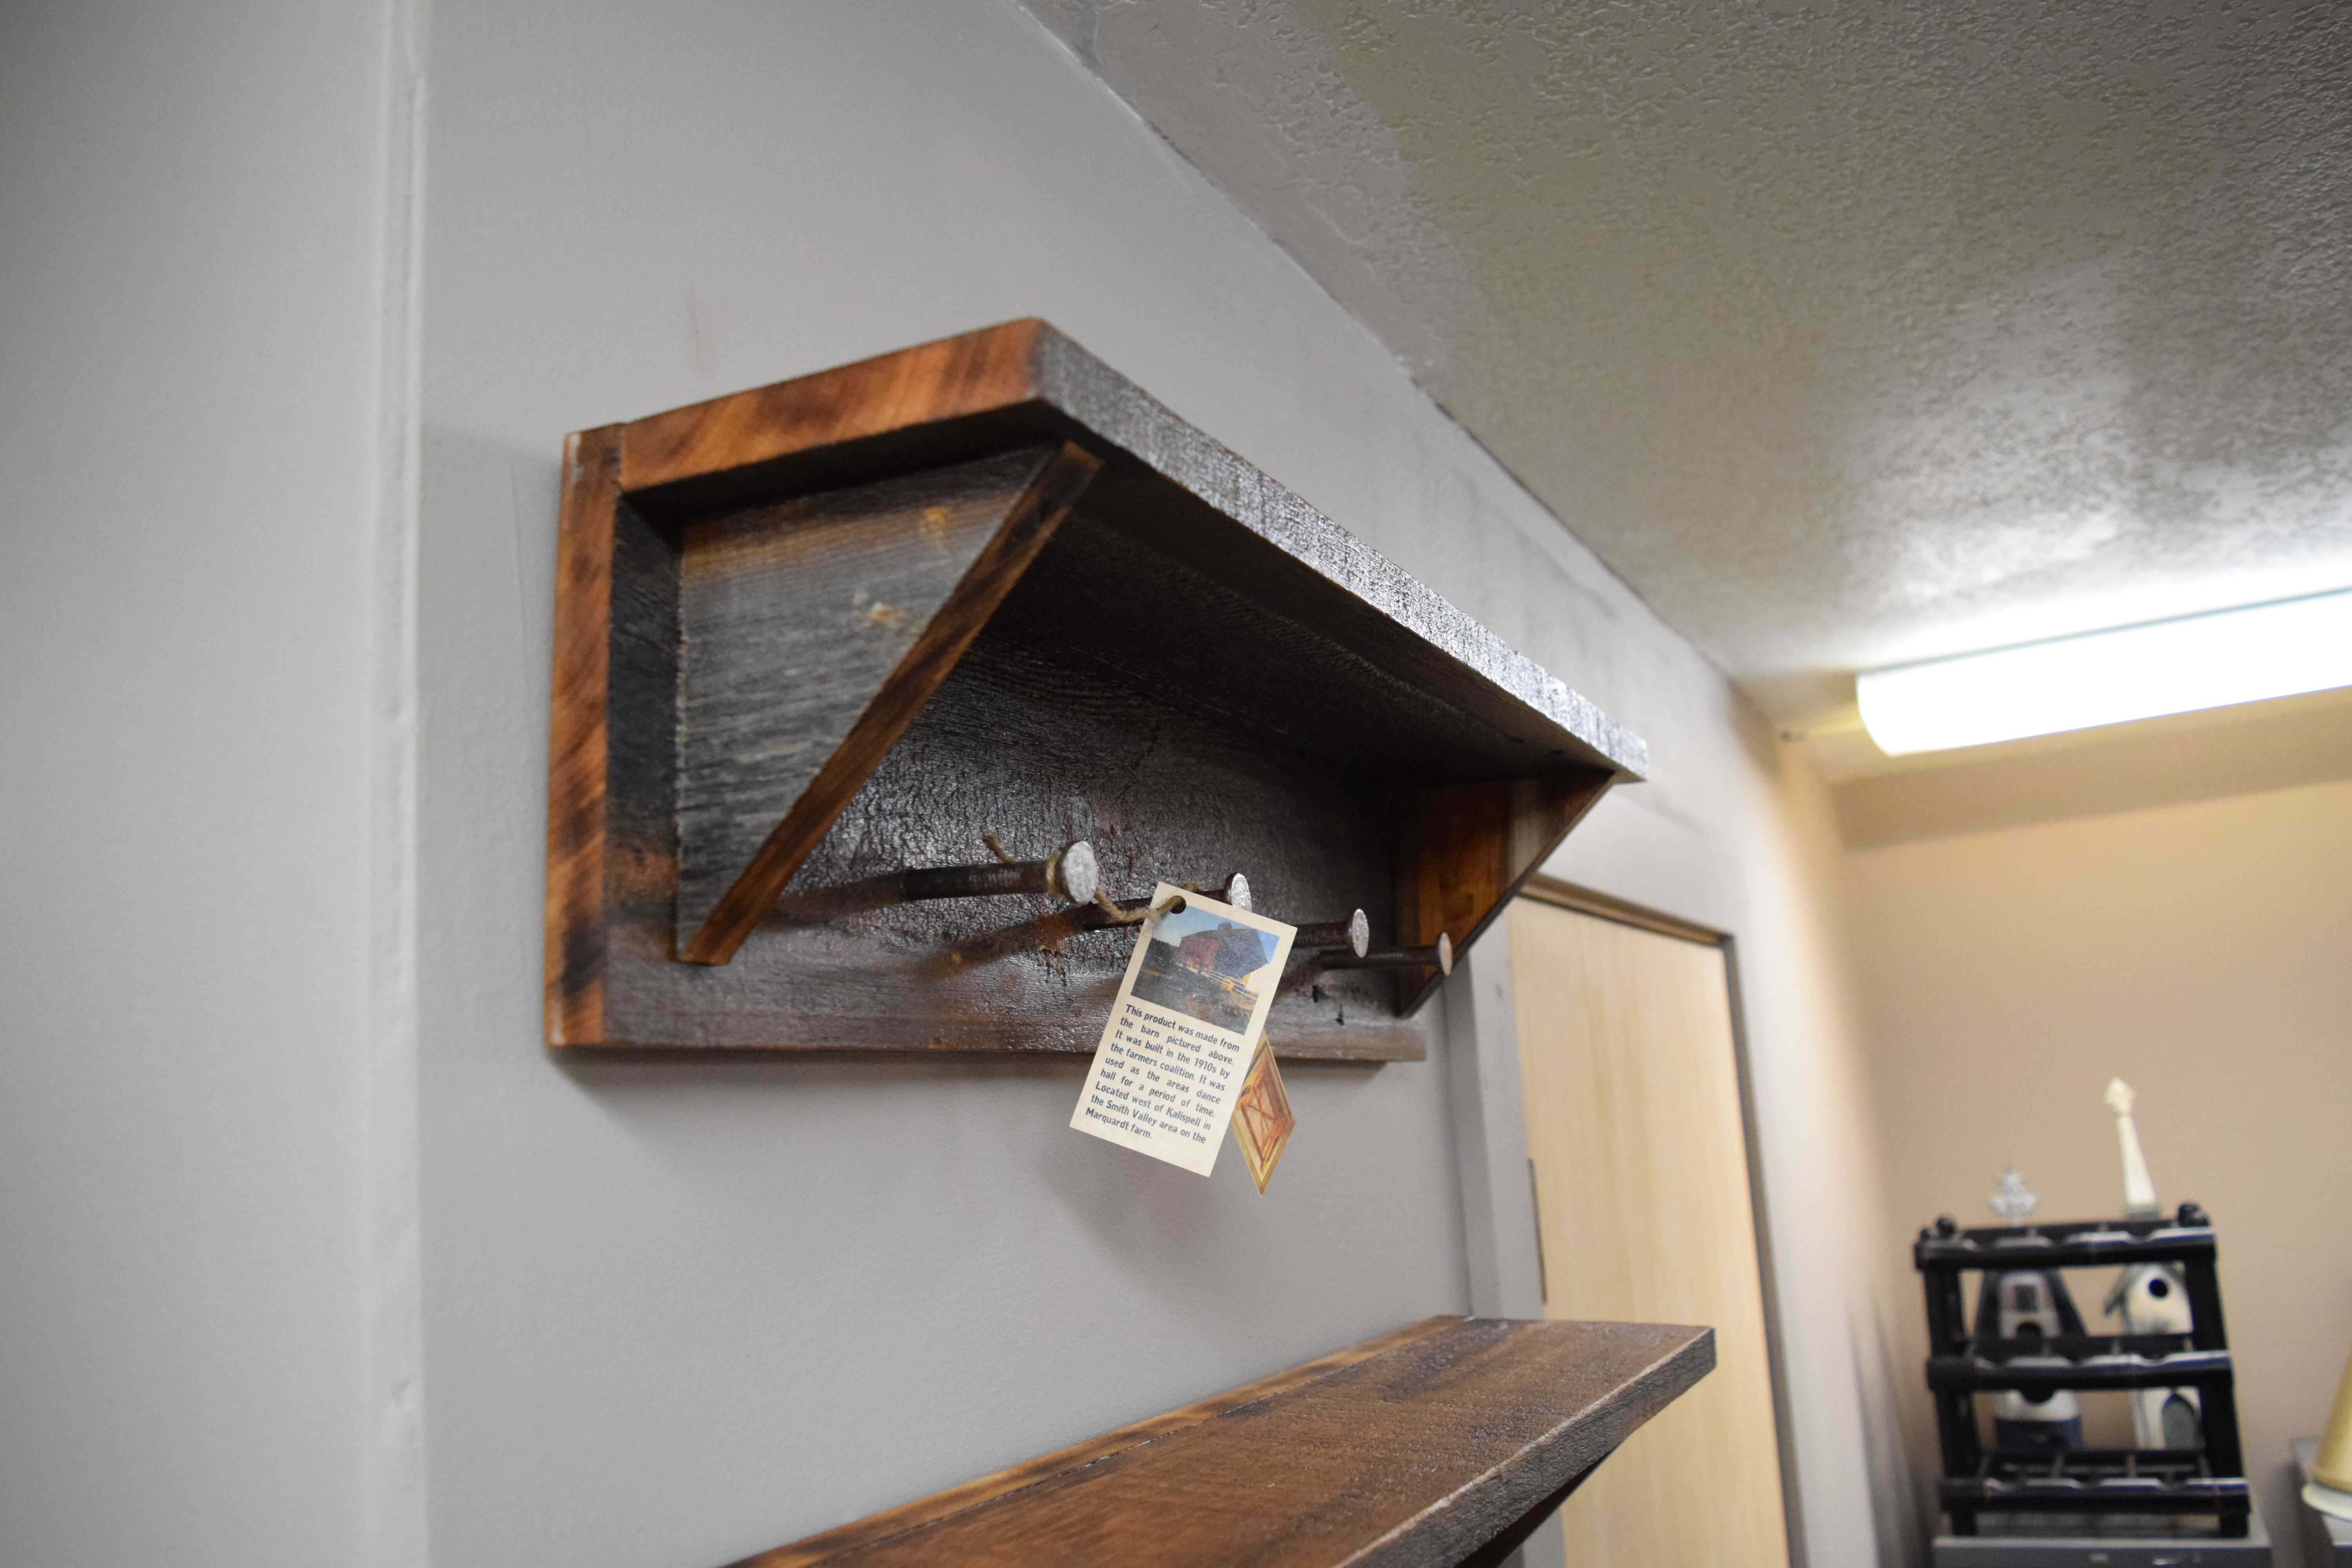 Buy a Handmade Barn Wood Coat Rack, made to order from